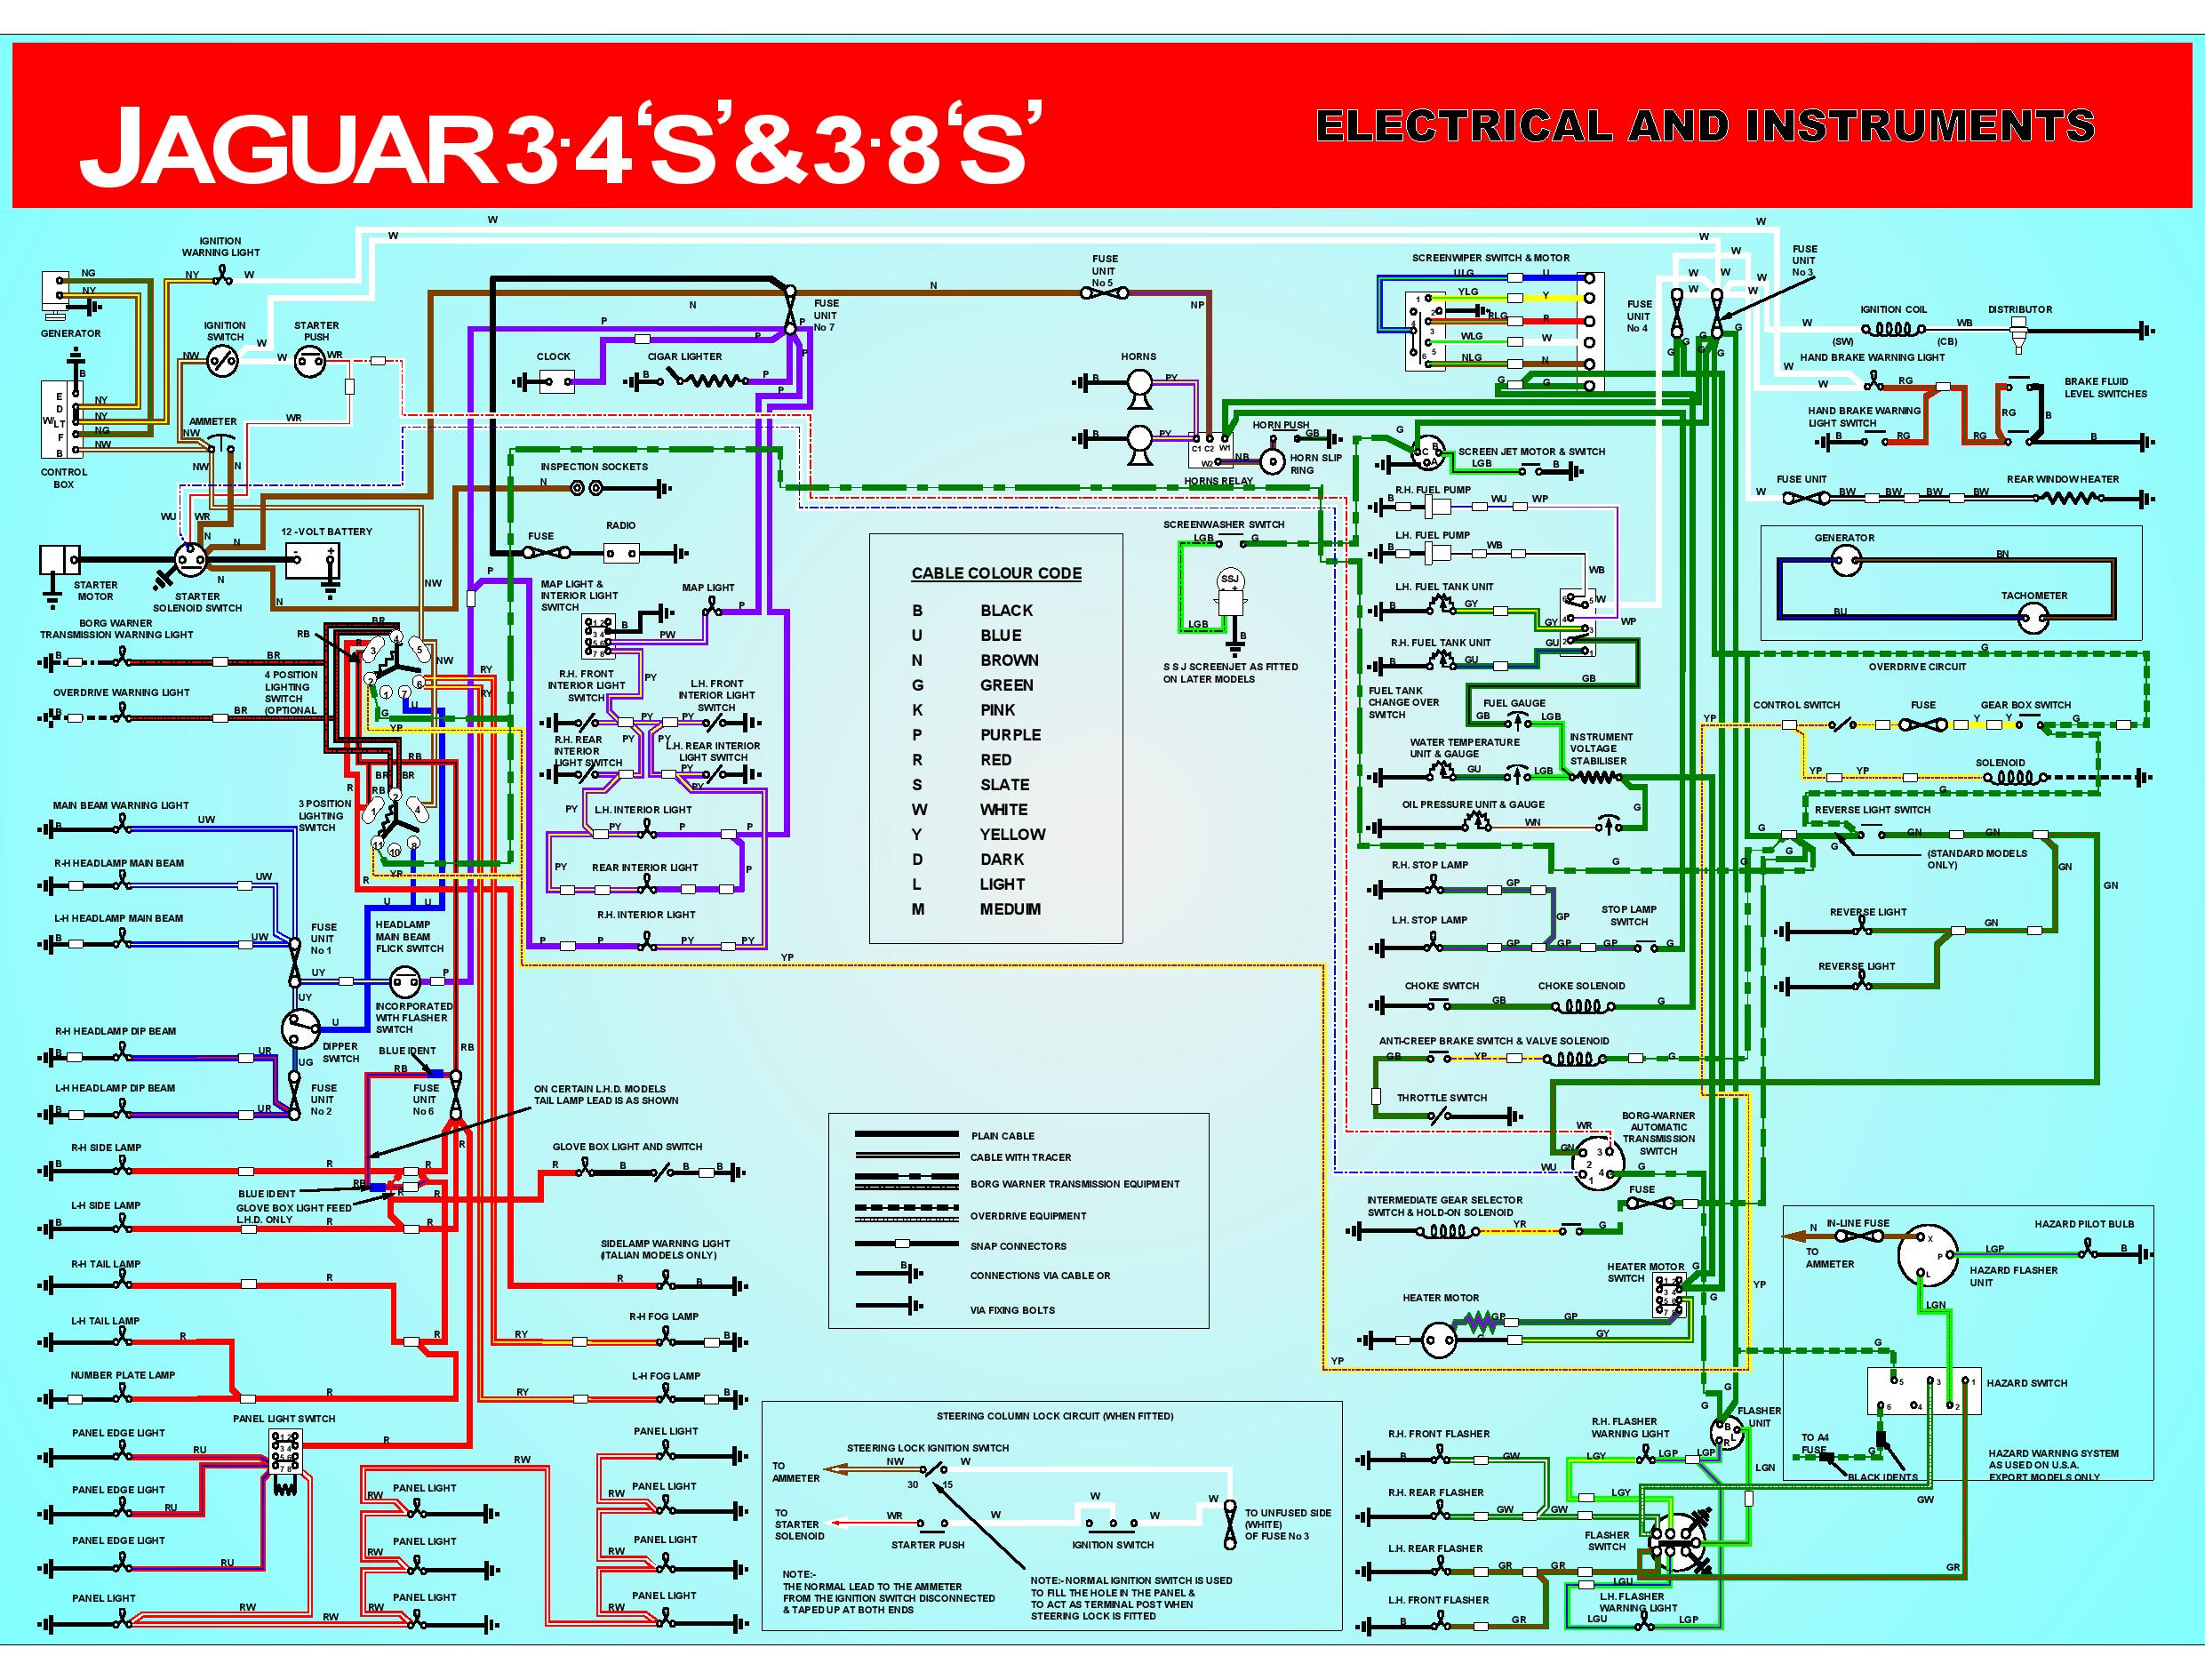 wiring diagram jaguar 1966 68 data wiring diagrams u2022 rh mikeadkinsguitar com